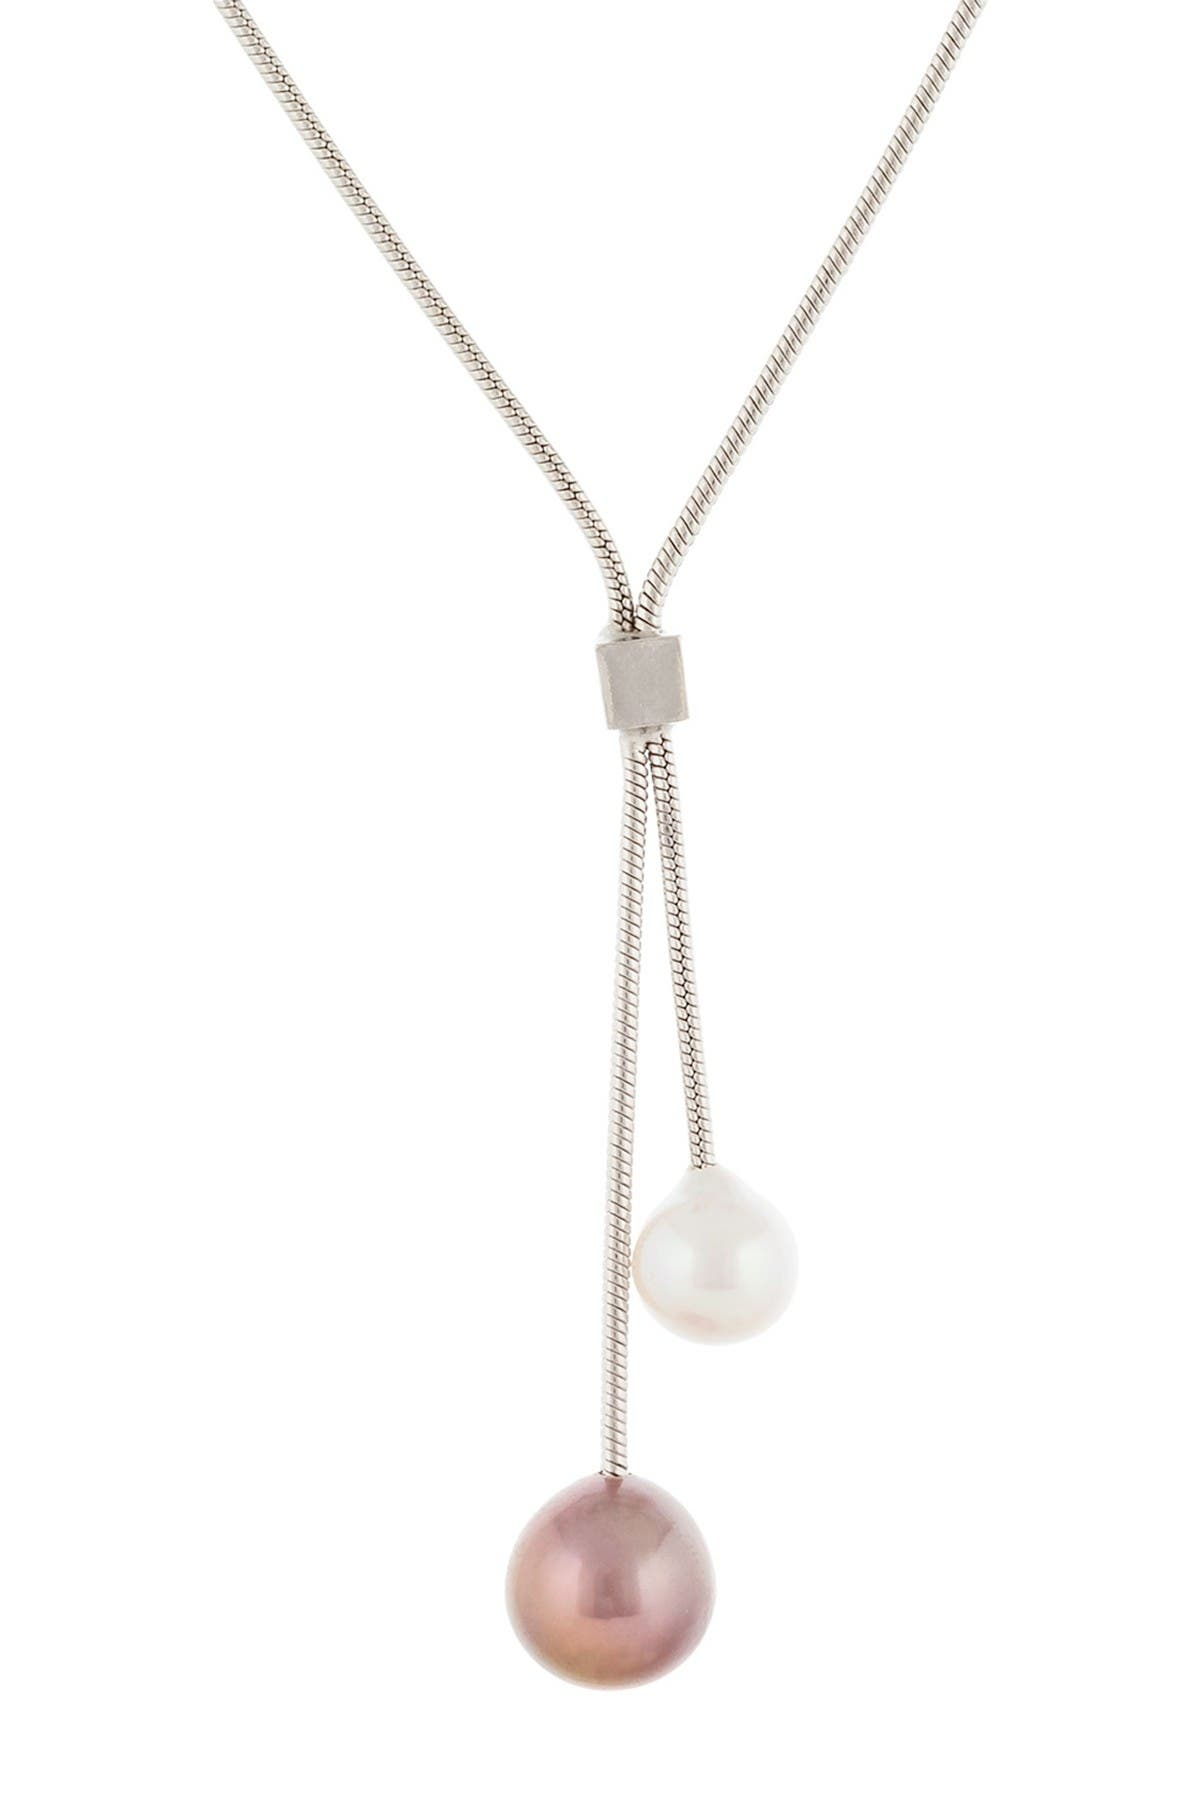 Image of Splendid Pearls Sterling Silver 9-10mm Fancy Multicolored Cultured Freshwater Pearl Dangle Necklace